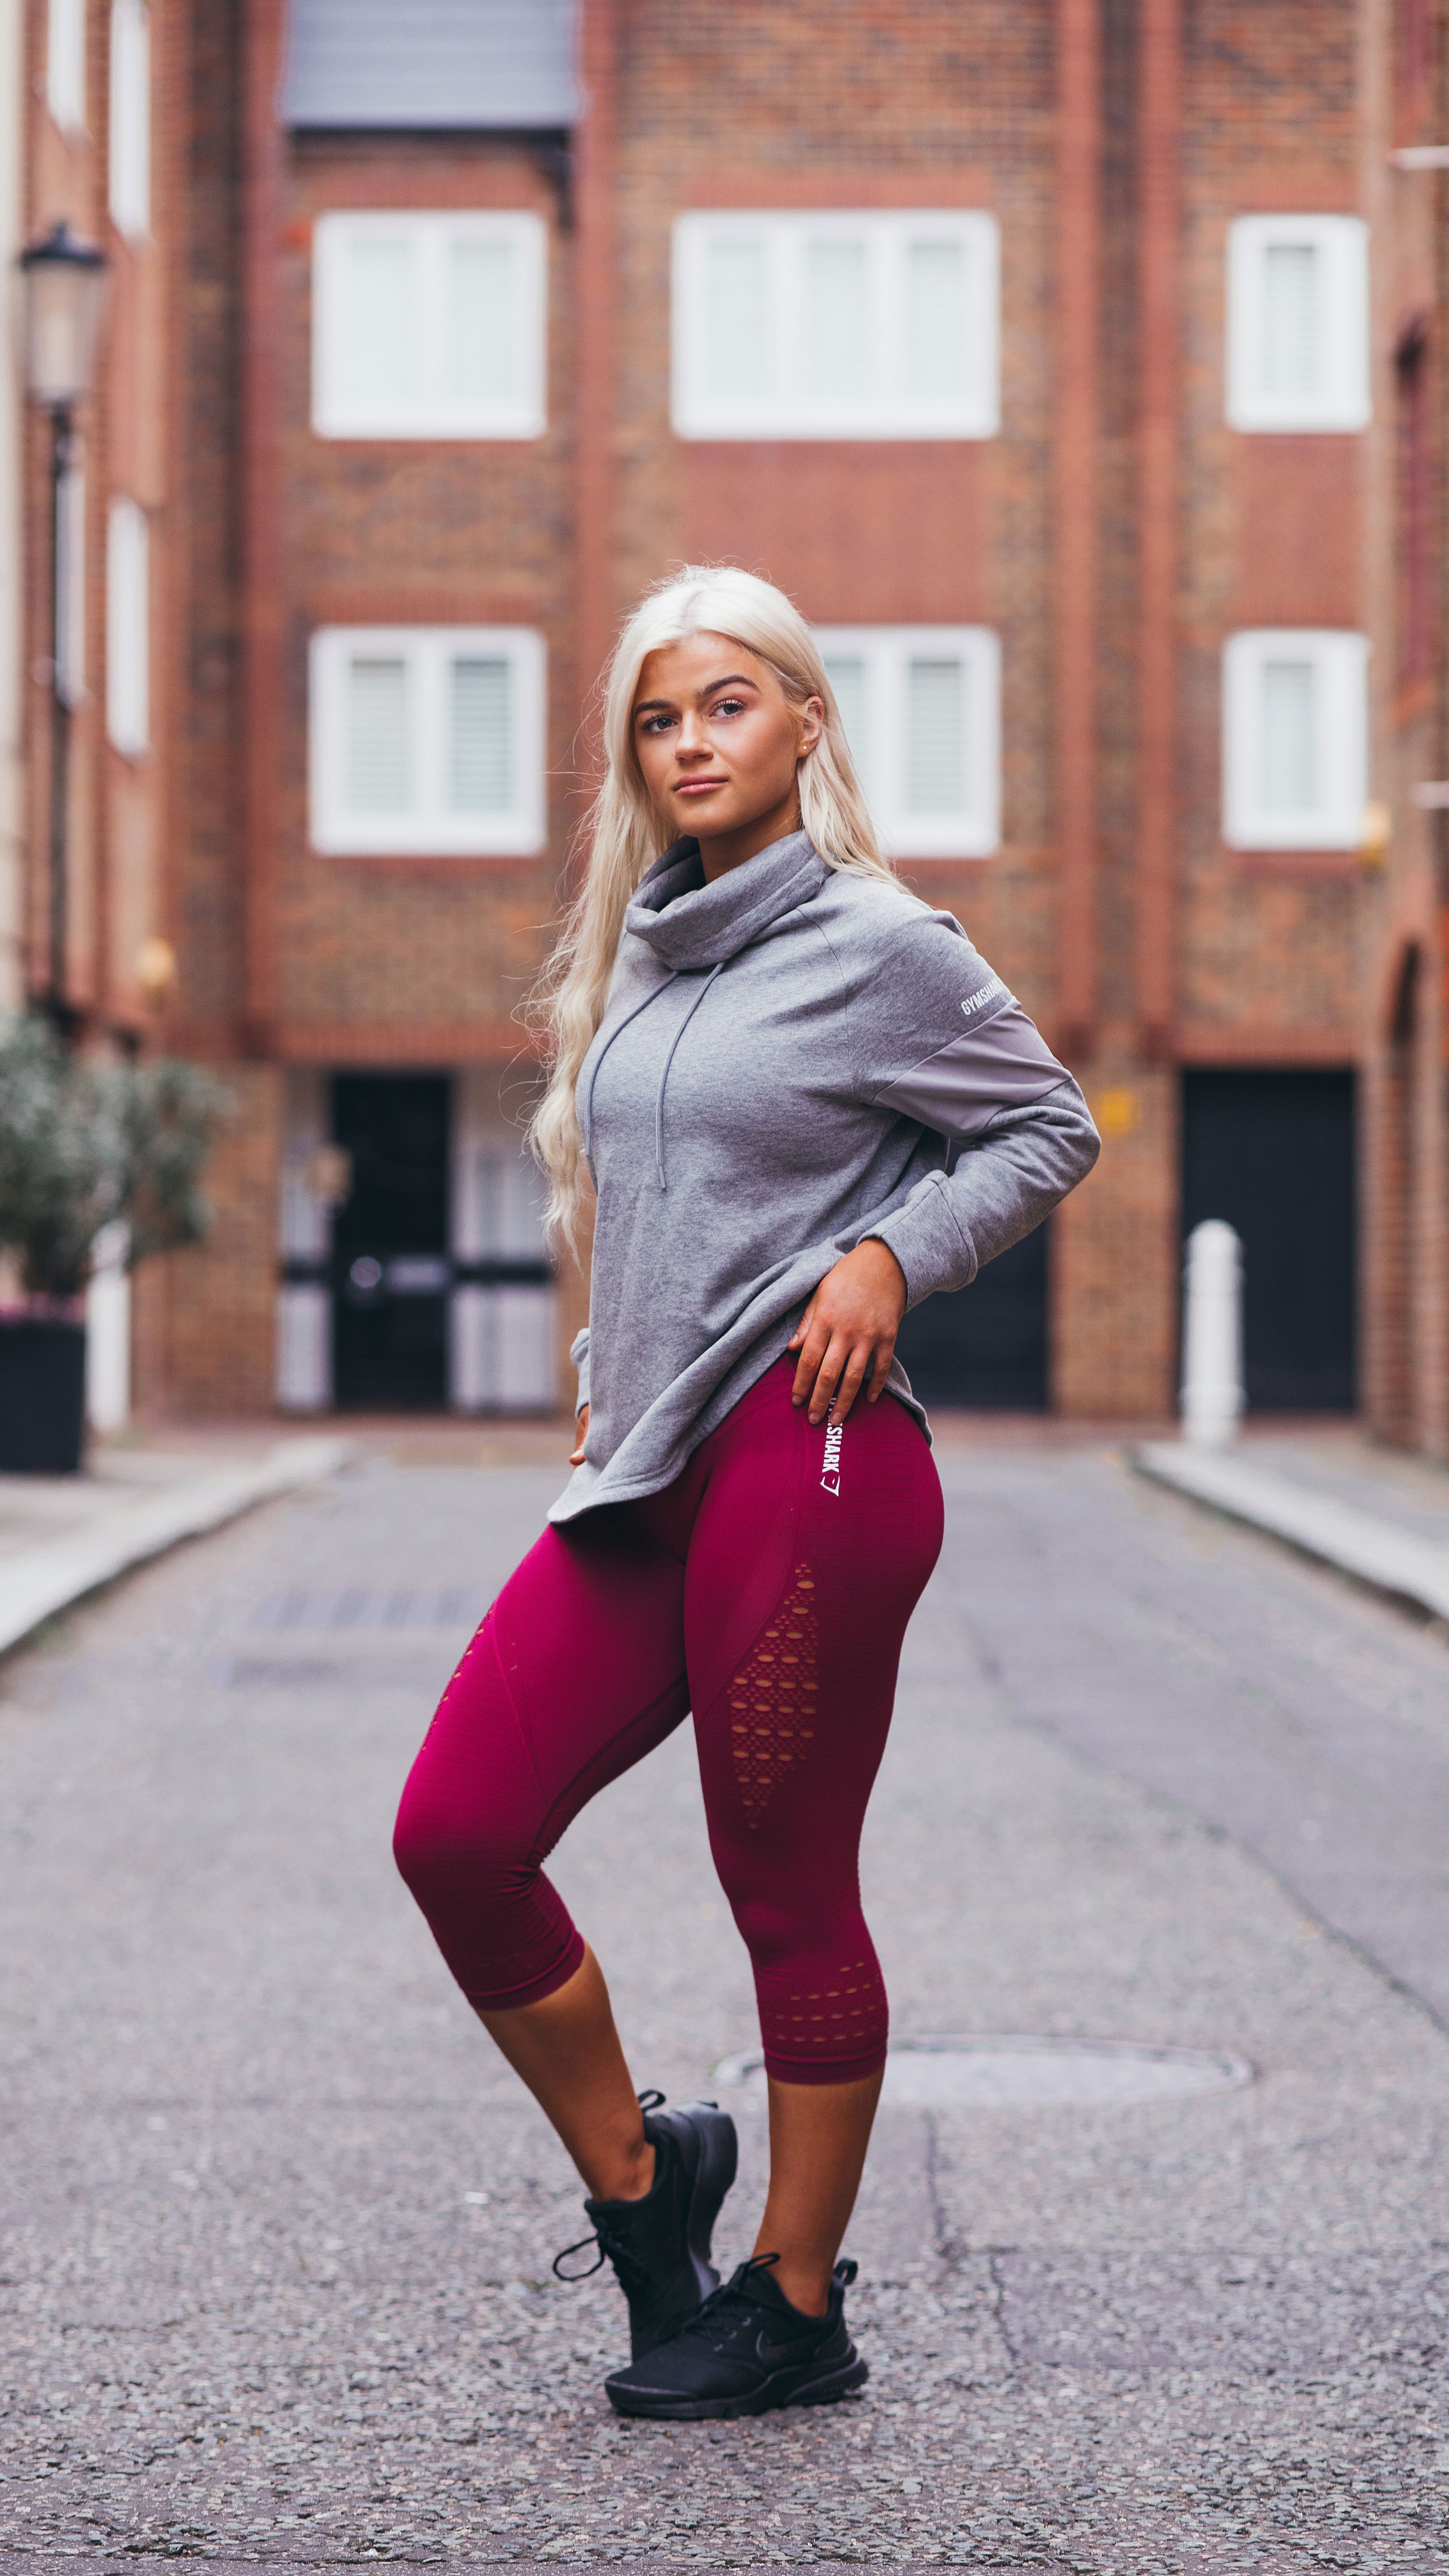 a5f0fb0d7a4451 Gymshark Athlete, Sian Walton, pairs the Energy Seamless Crop Leggings with  the Slouch Hoodie, coming soon.